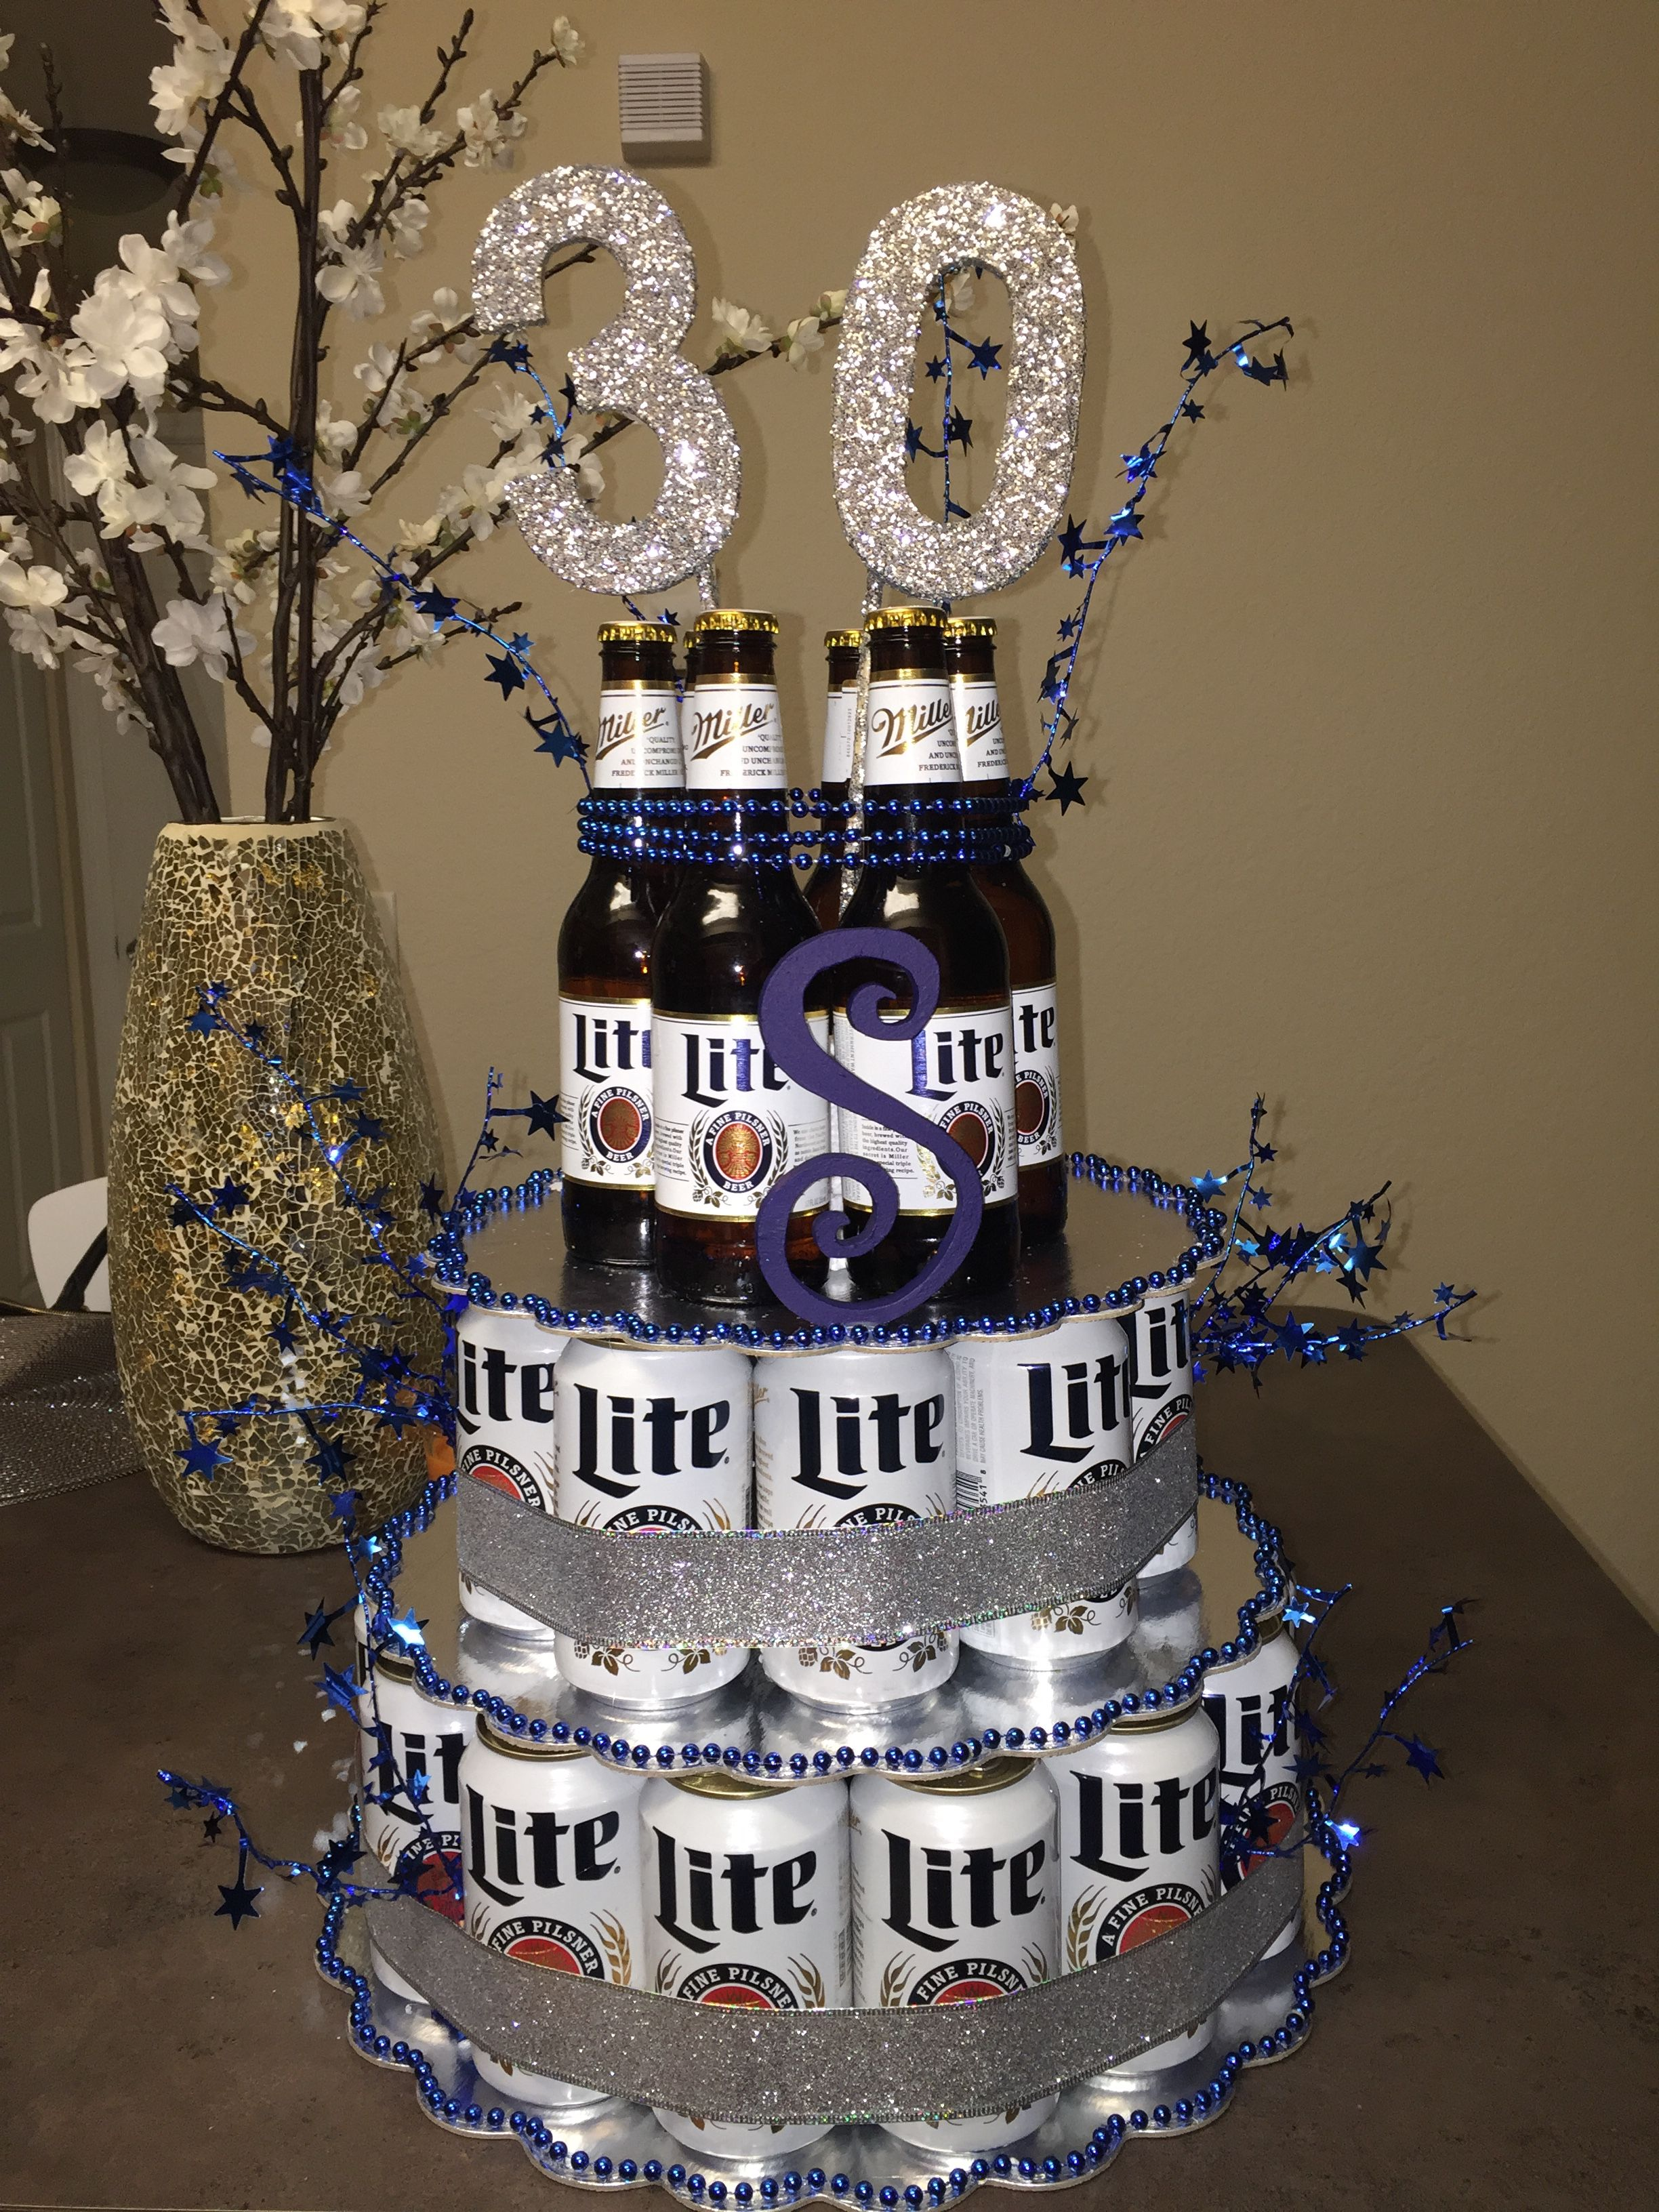 beer cake i made for boyfriends 30th birthday beer cake pinterest geschenkideen 30. Black Bedroom Furniture Sets. Home Design Ideas